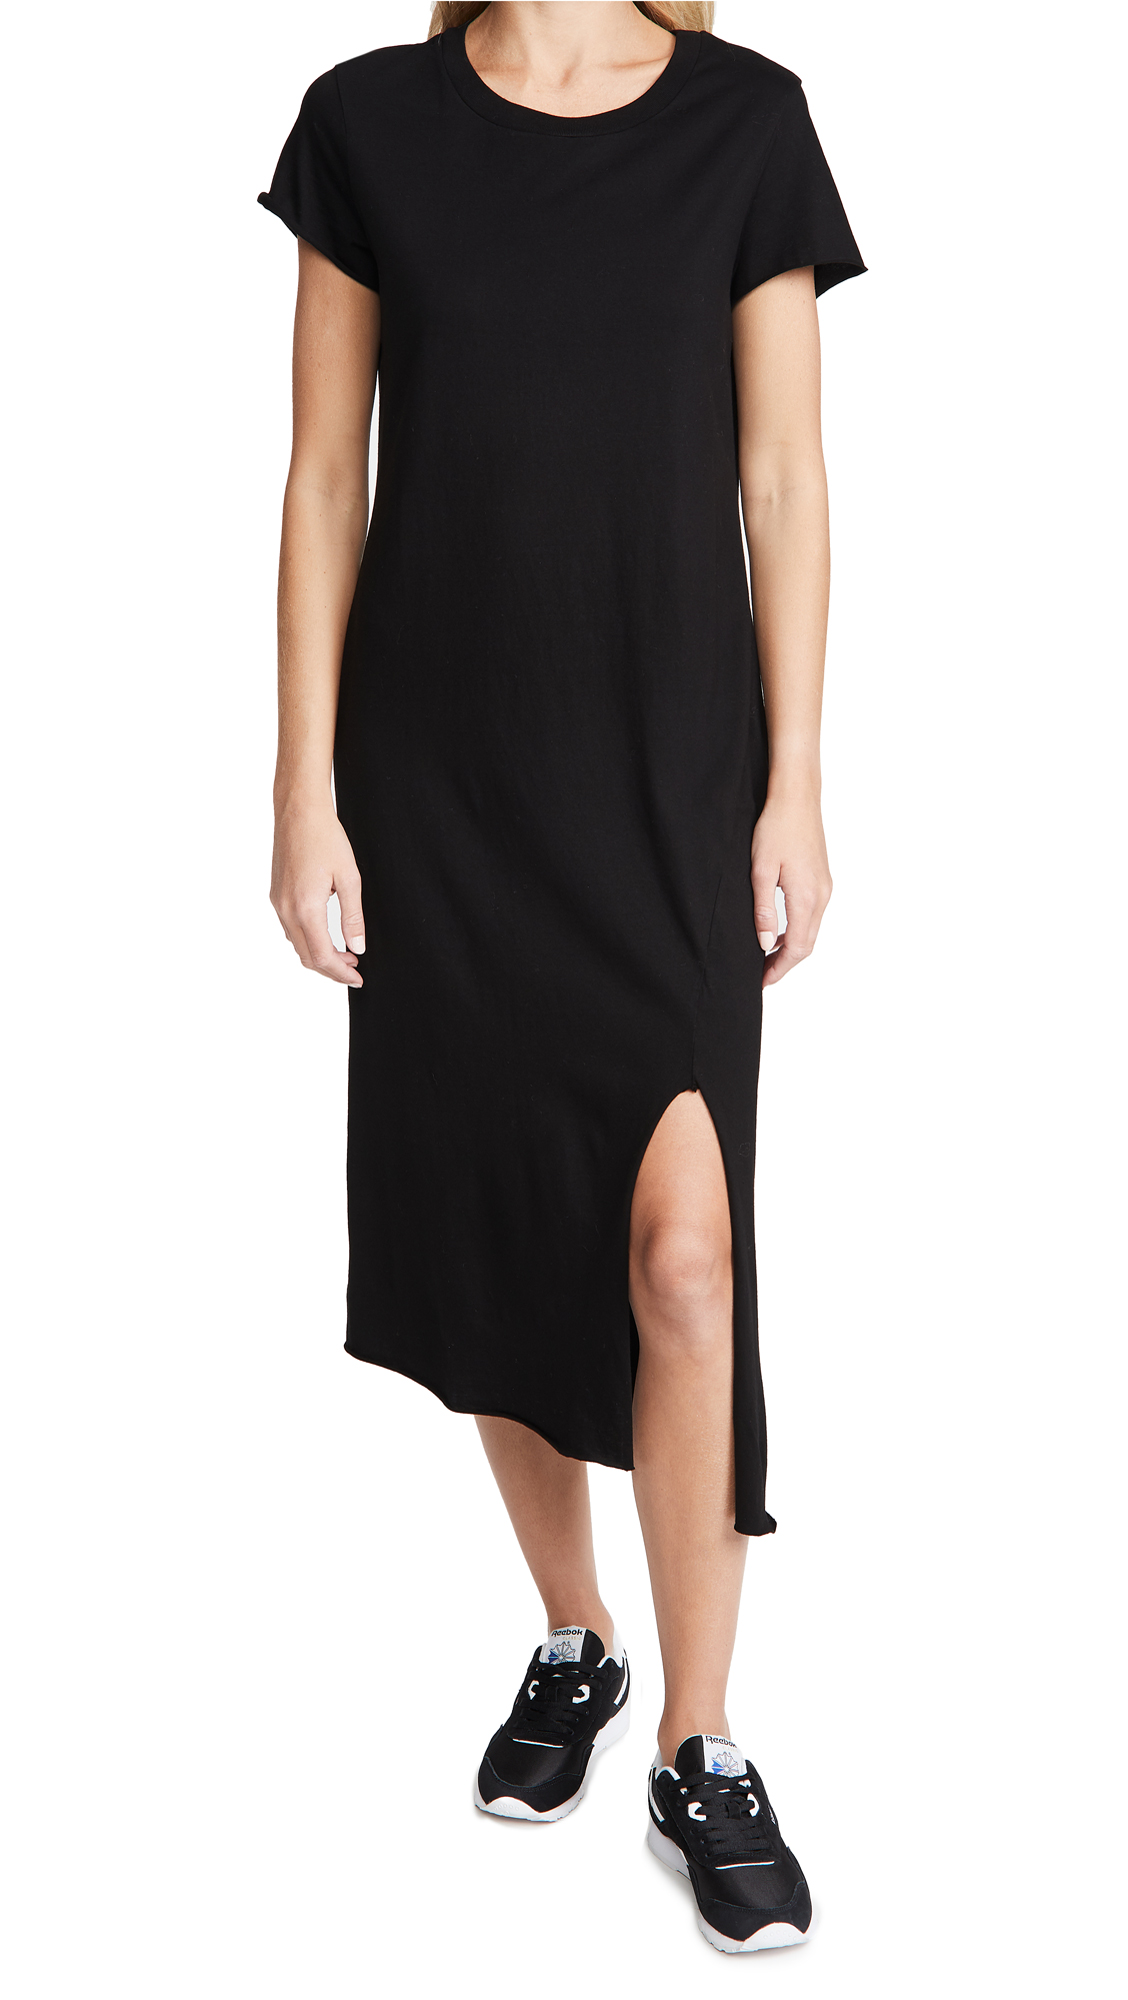 Frank & Eileen Short Sleeve Crew Neck Dress